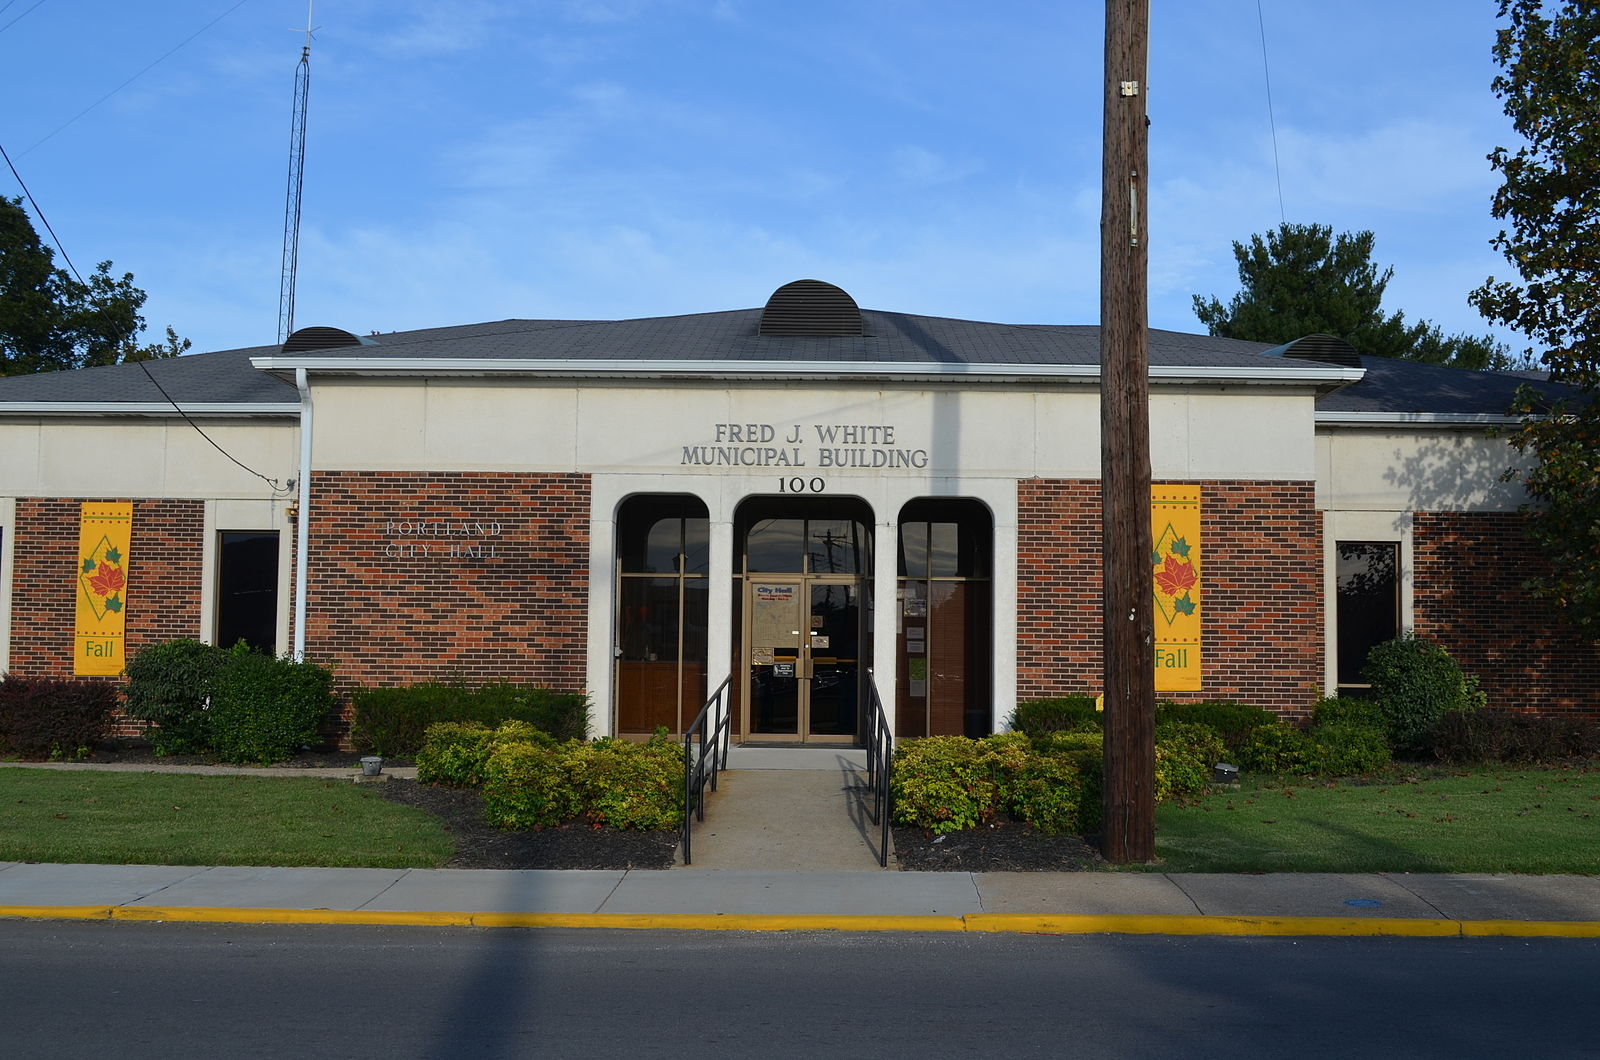 Fred_J_White_Municipal_Building_Portland_Tennessee_2012